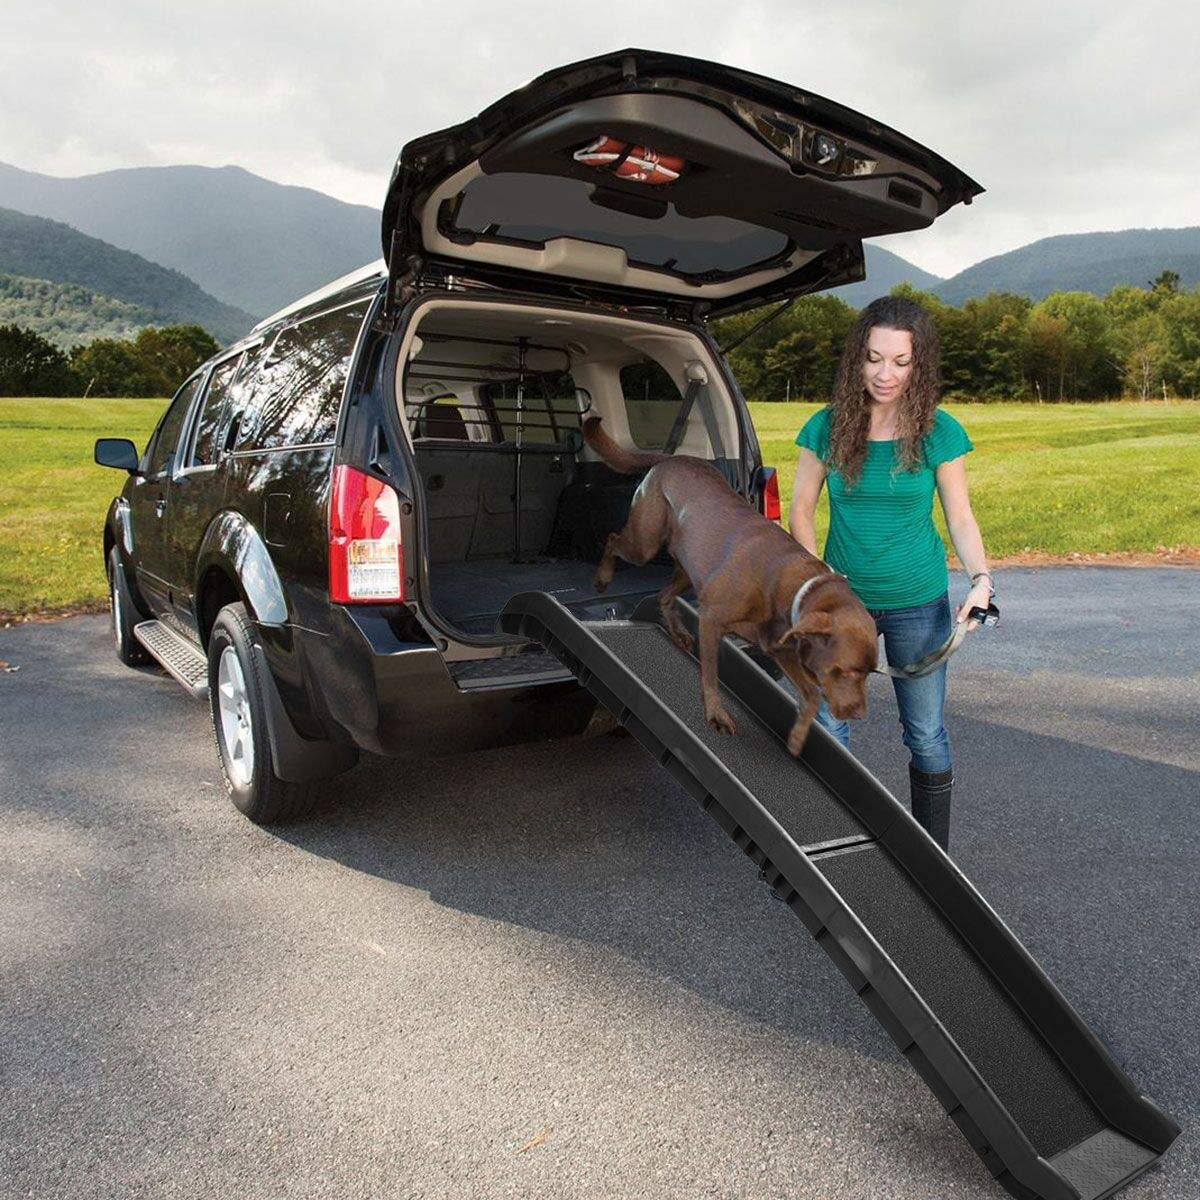 JAXPETY 62'' Portable Black Folding Pet Ramps for SUV Cars Travel Portable Light Weight by JAXPETY